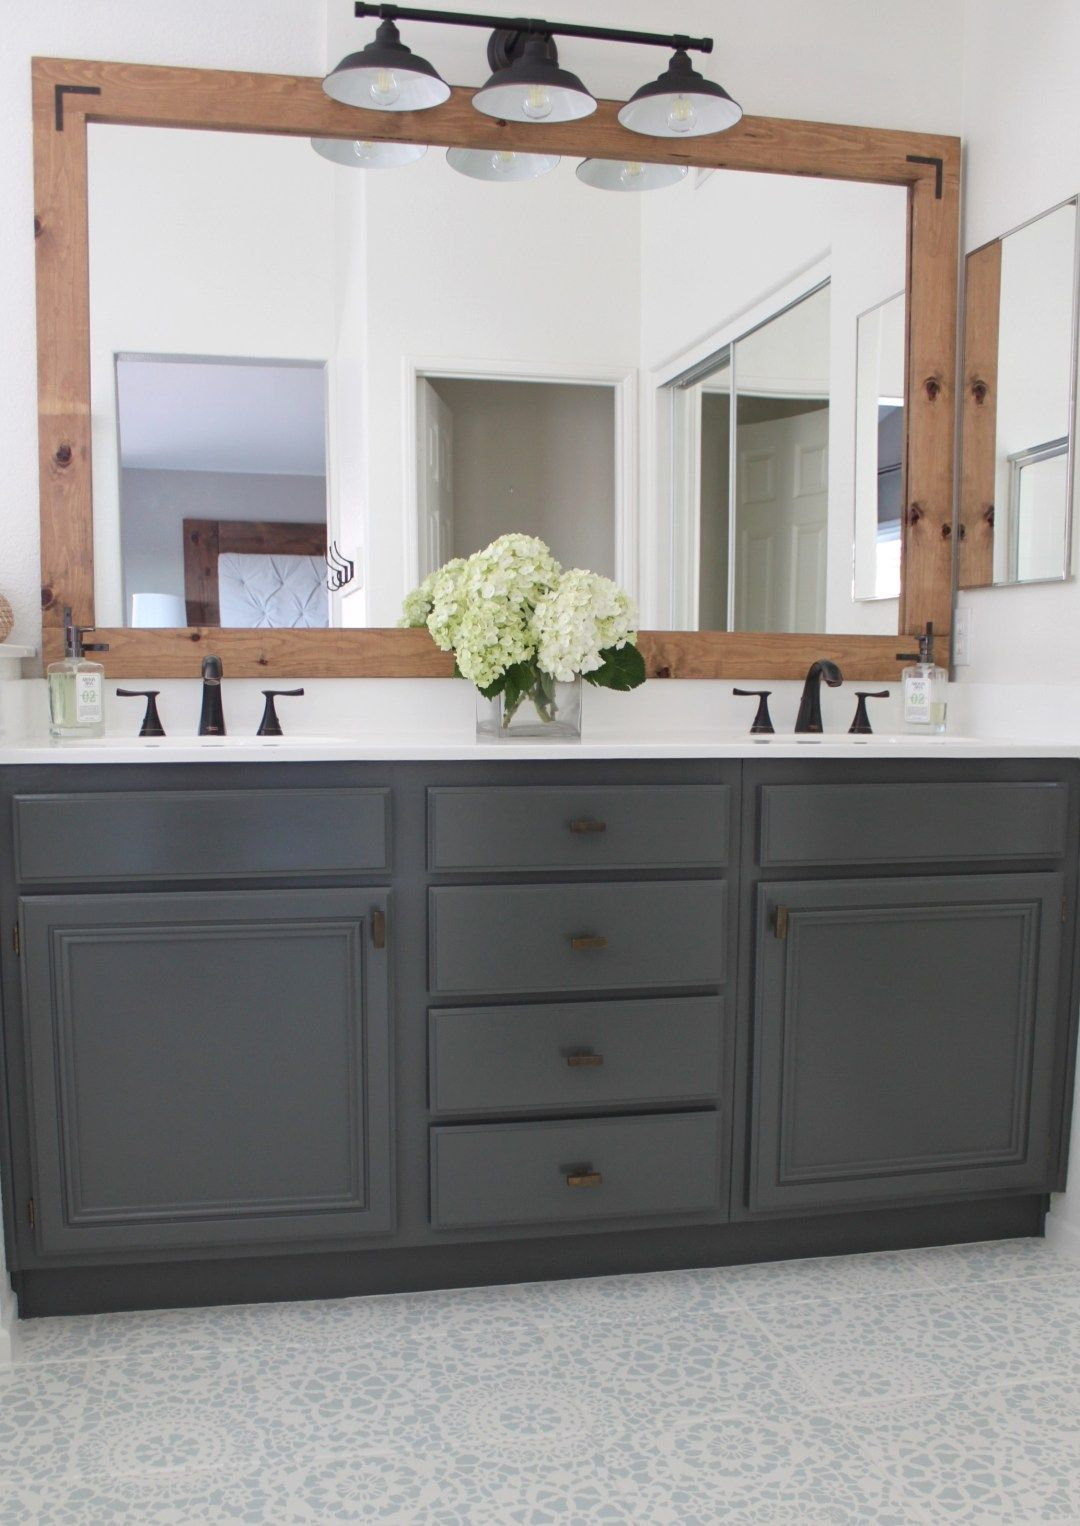 Explore Kitchen Island Ideas On Pinterest See More About Bathroom Cabinet